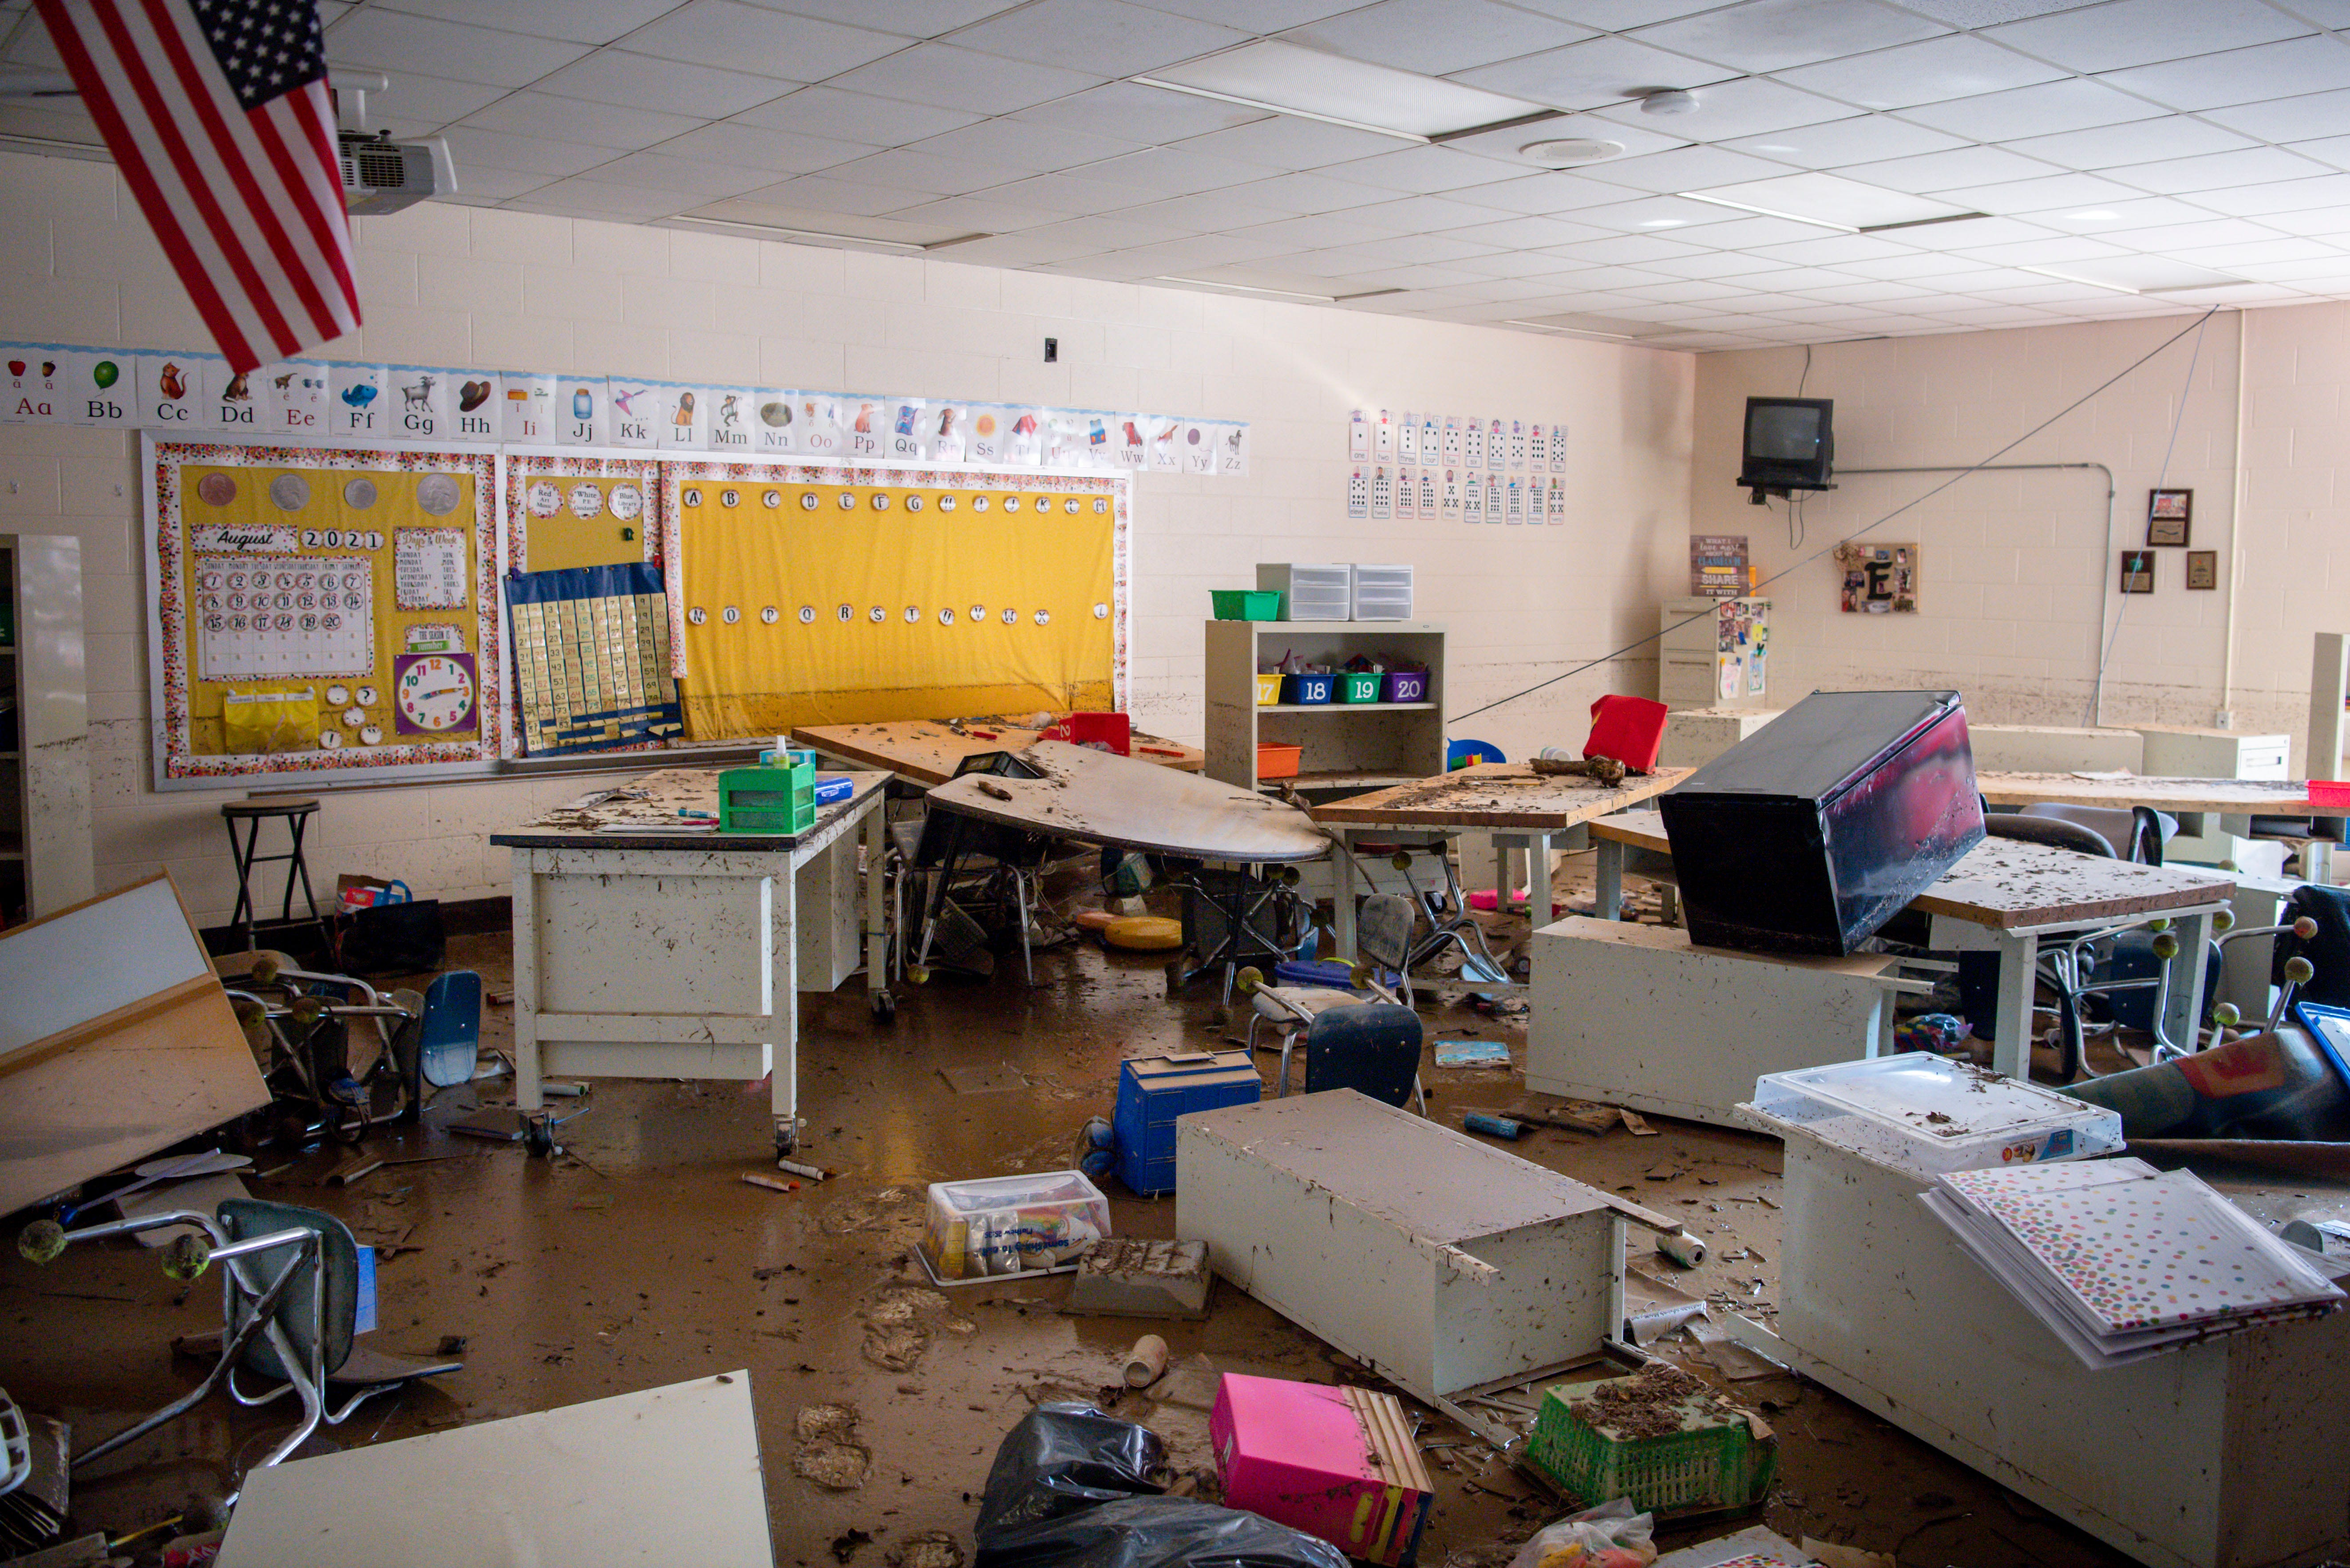 Inside a flood damaged Waverly Elementary School classroom as seen on Wednesday, Aug. 25, 2021, after flash flooding swept through the town of Waverly, Tenn.